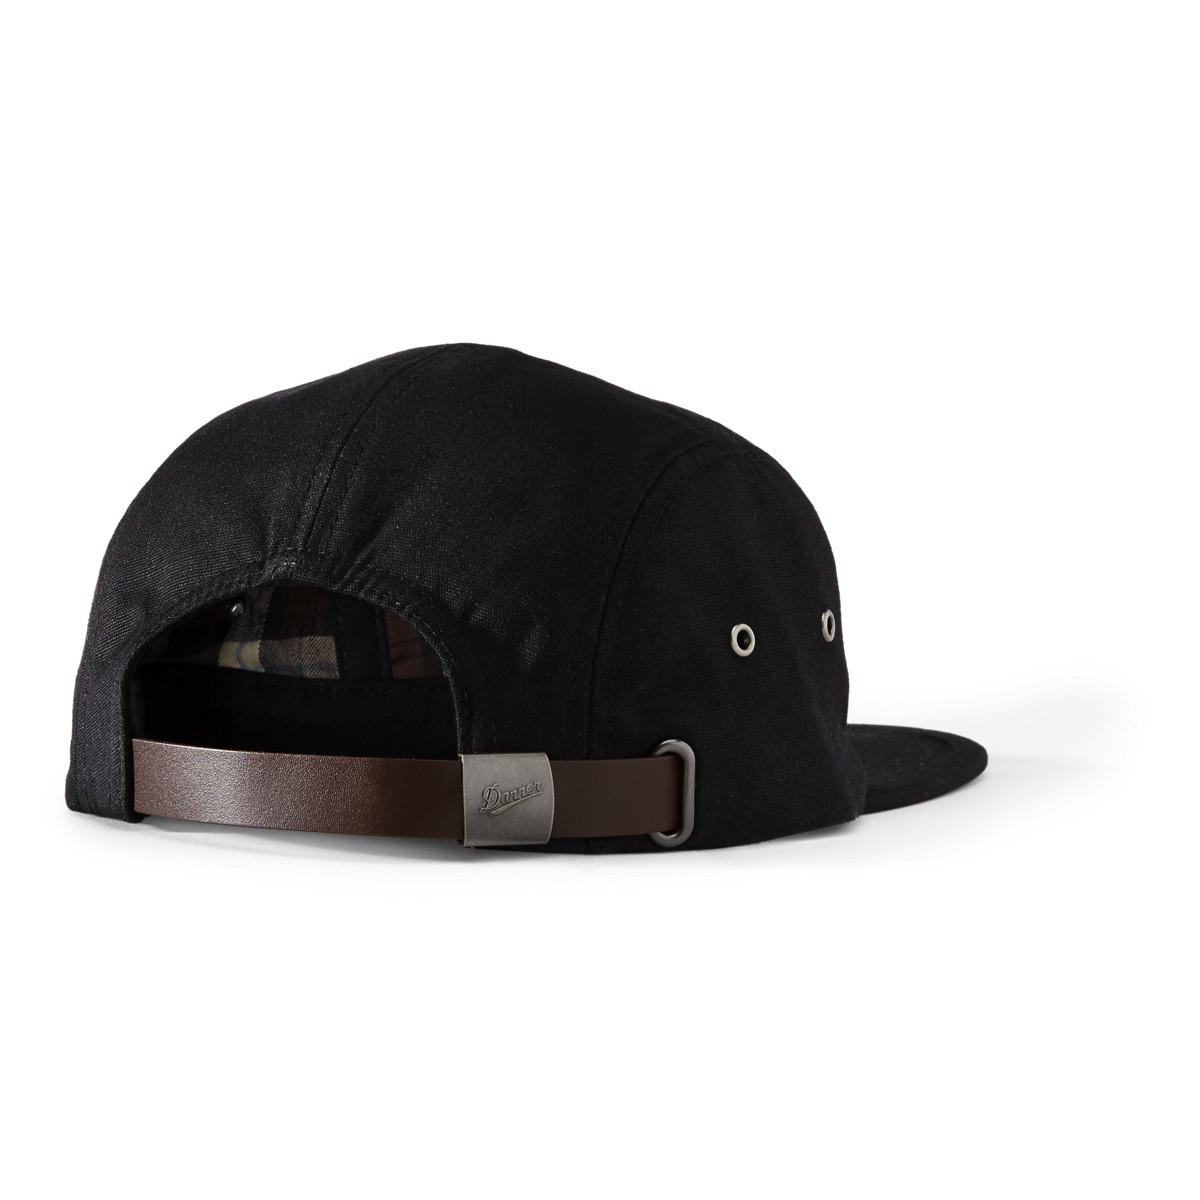 Danner Five Panel Flat Cap - Black